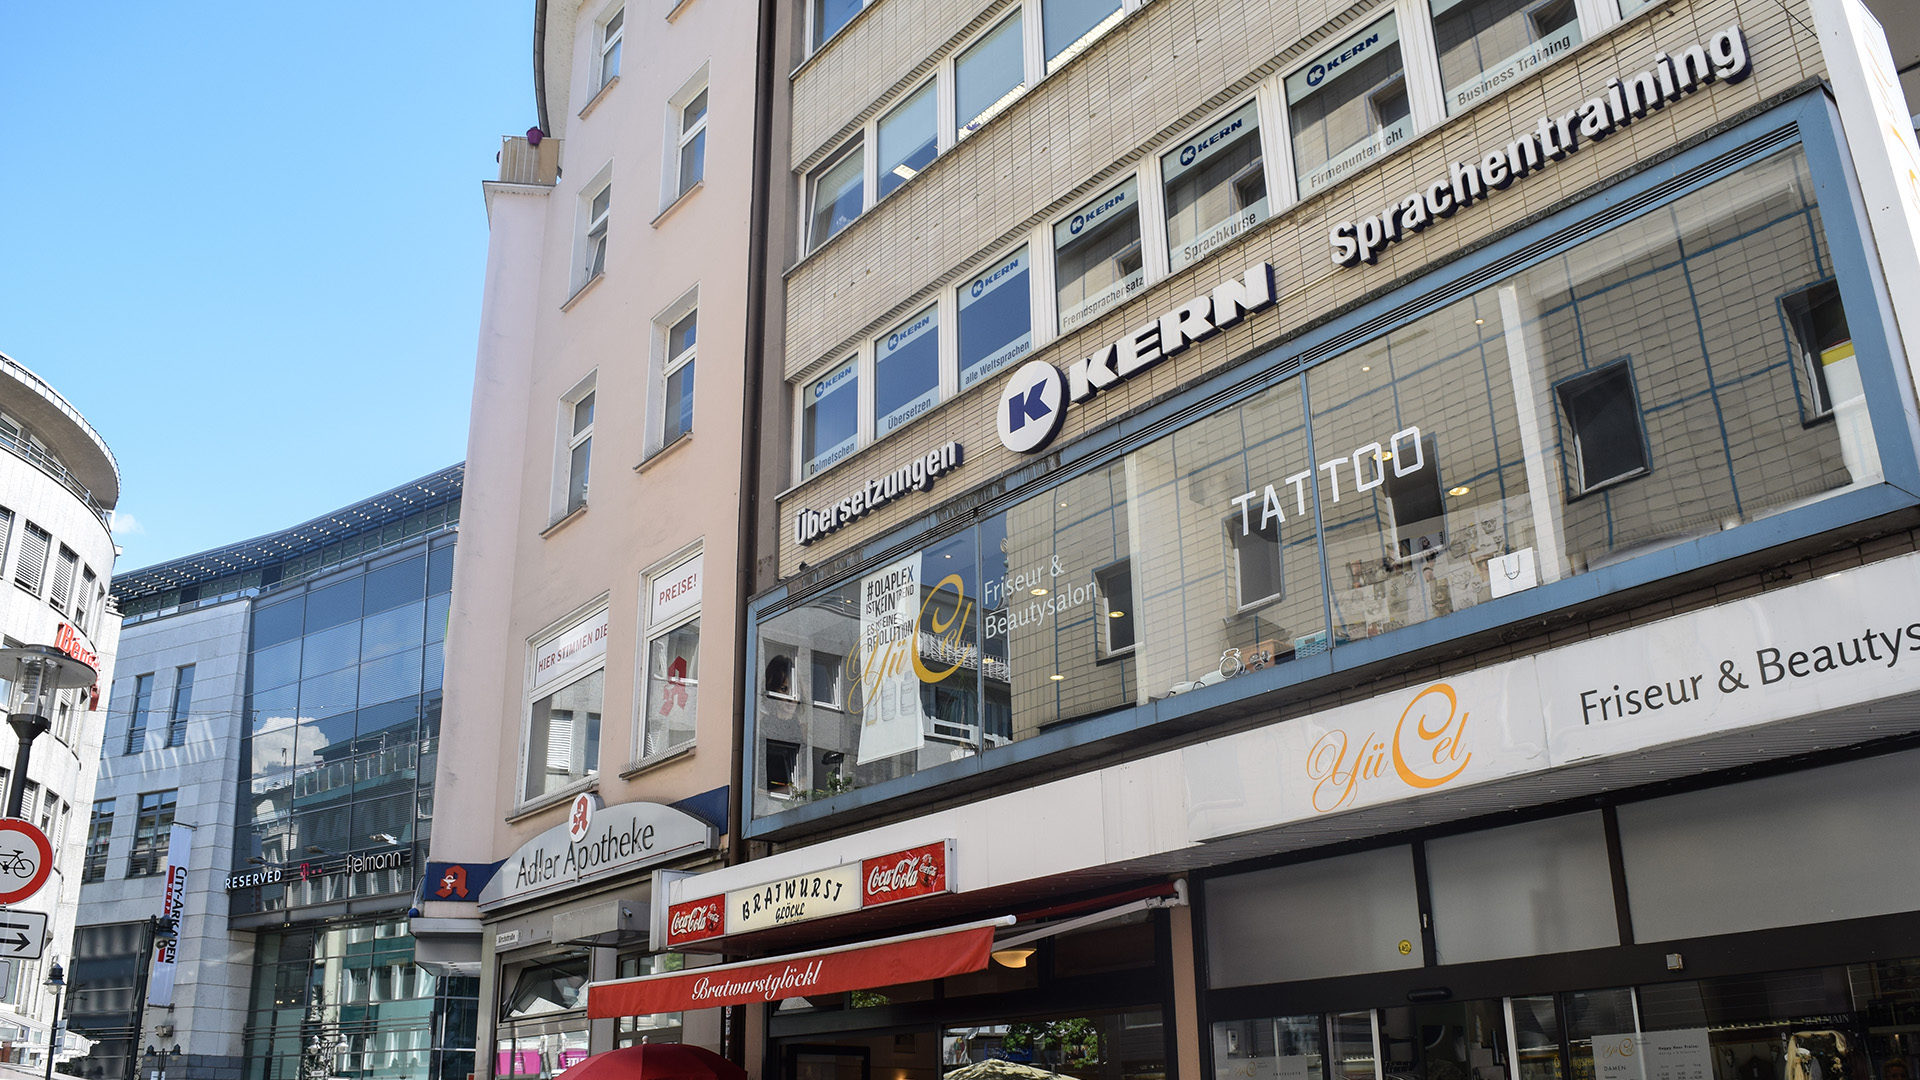 Wuppertal translation office